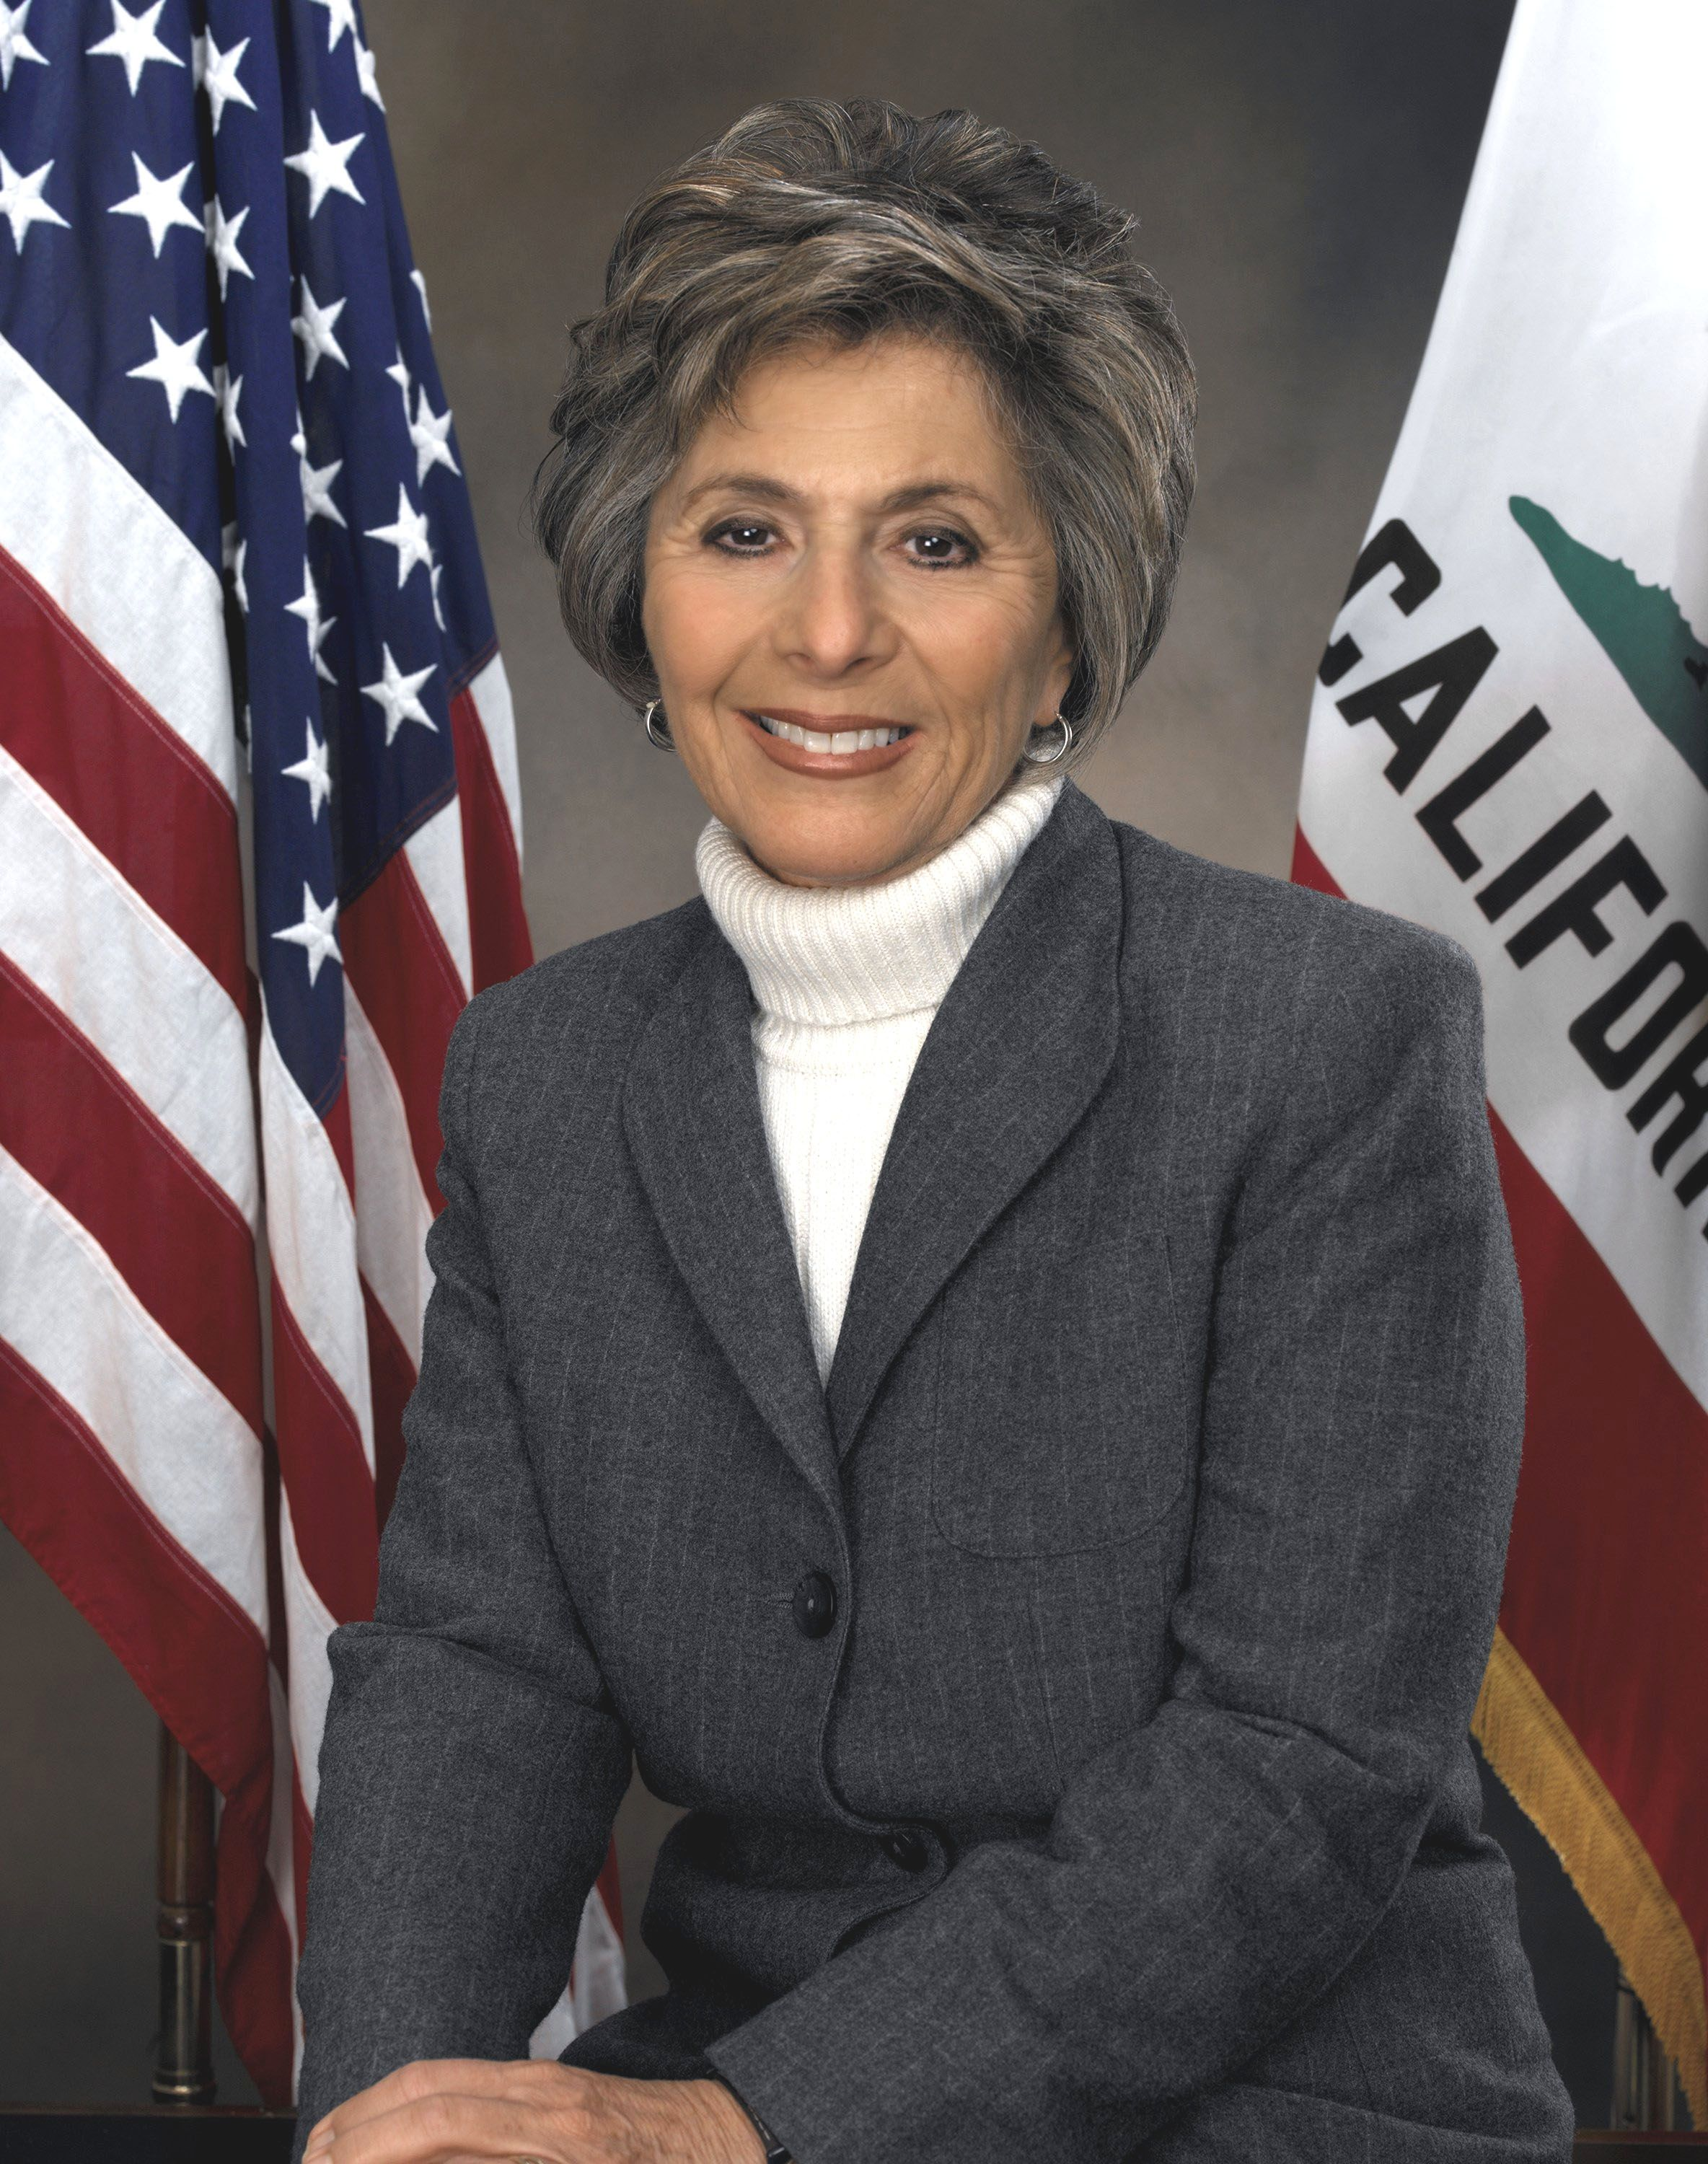 Outgoing Ca Senator Barbara Boxer Introduces Bill To Abolish